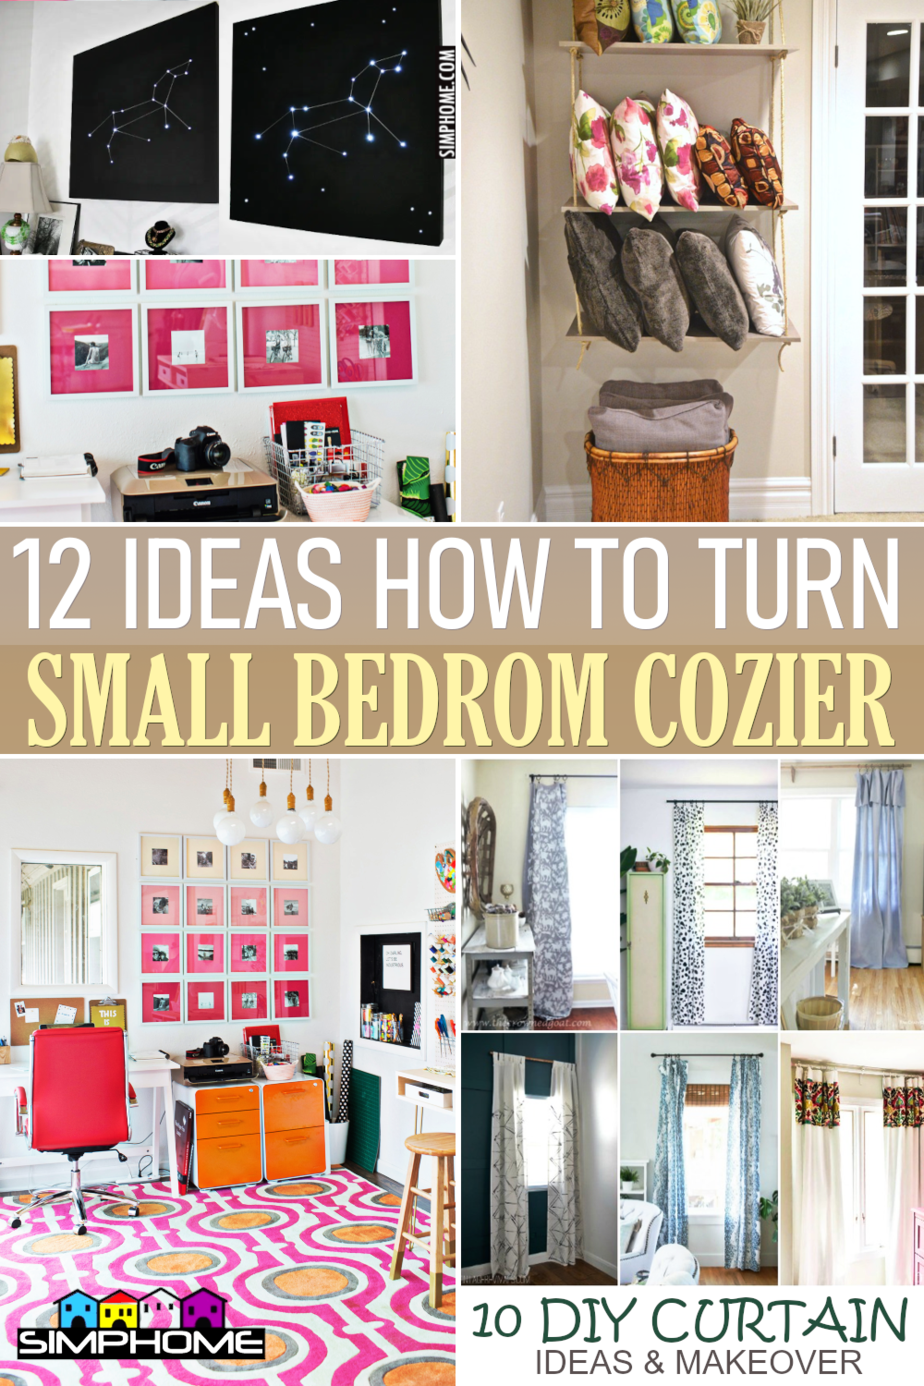 12 Ideas On How To Make Your Bedroom Coziest Place by Simphome.comFeatured